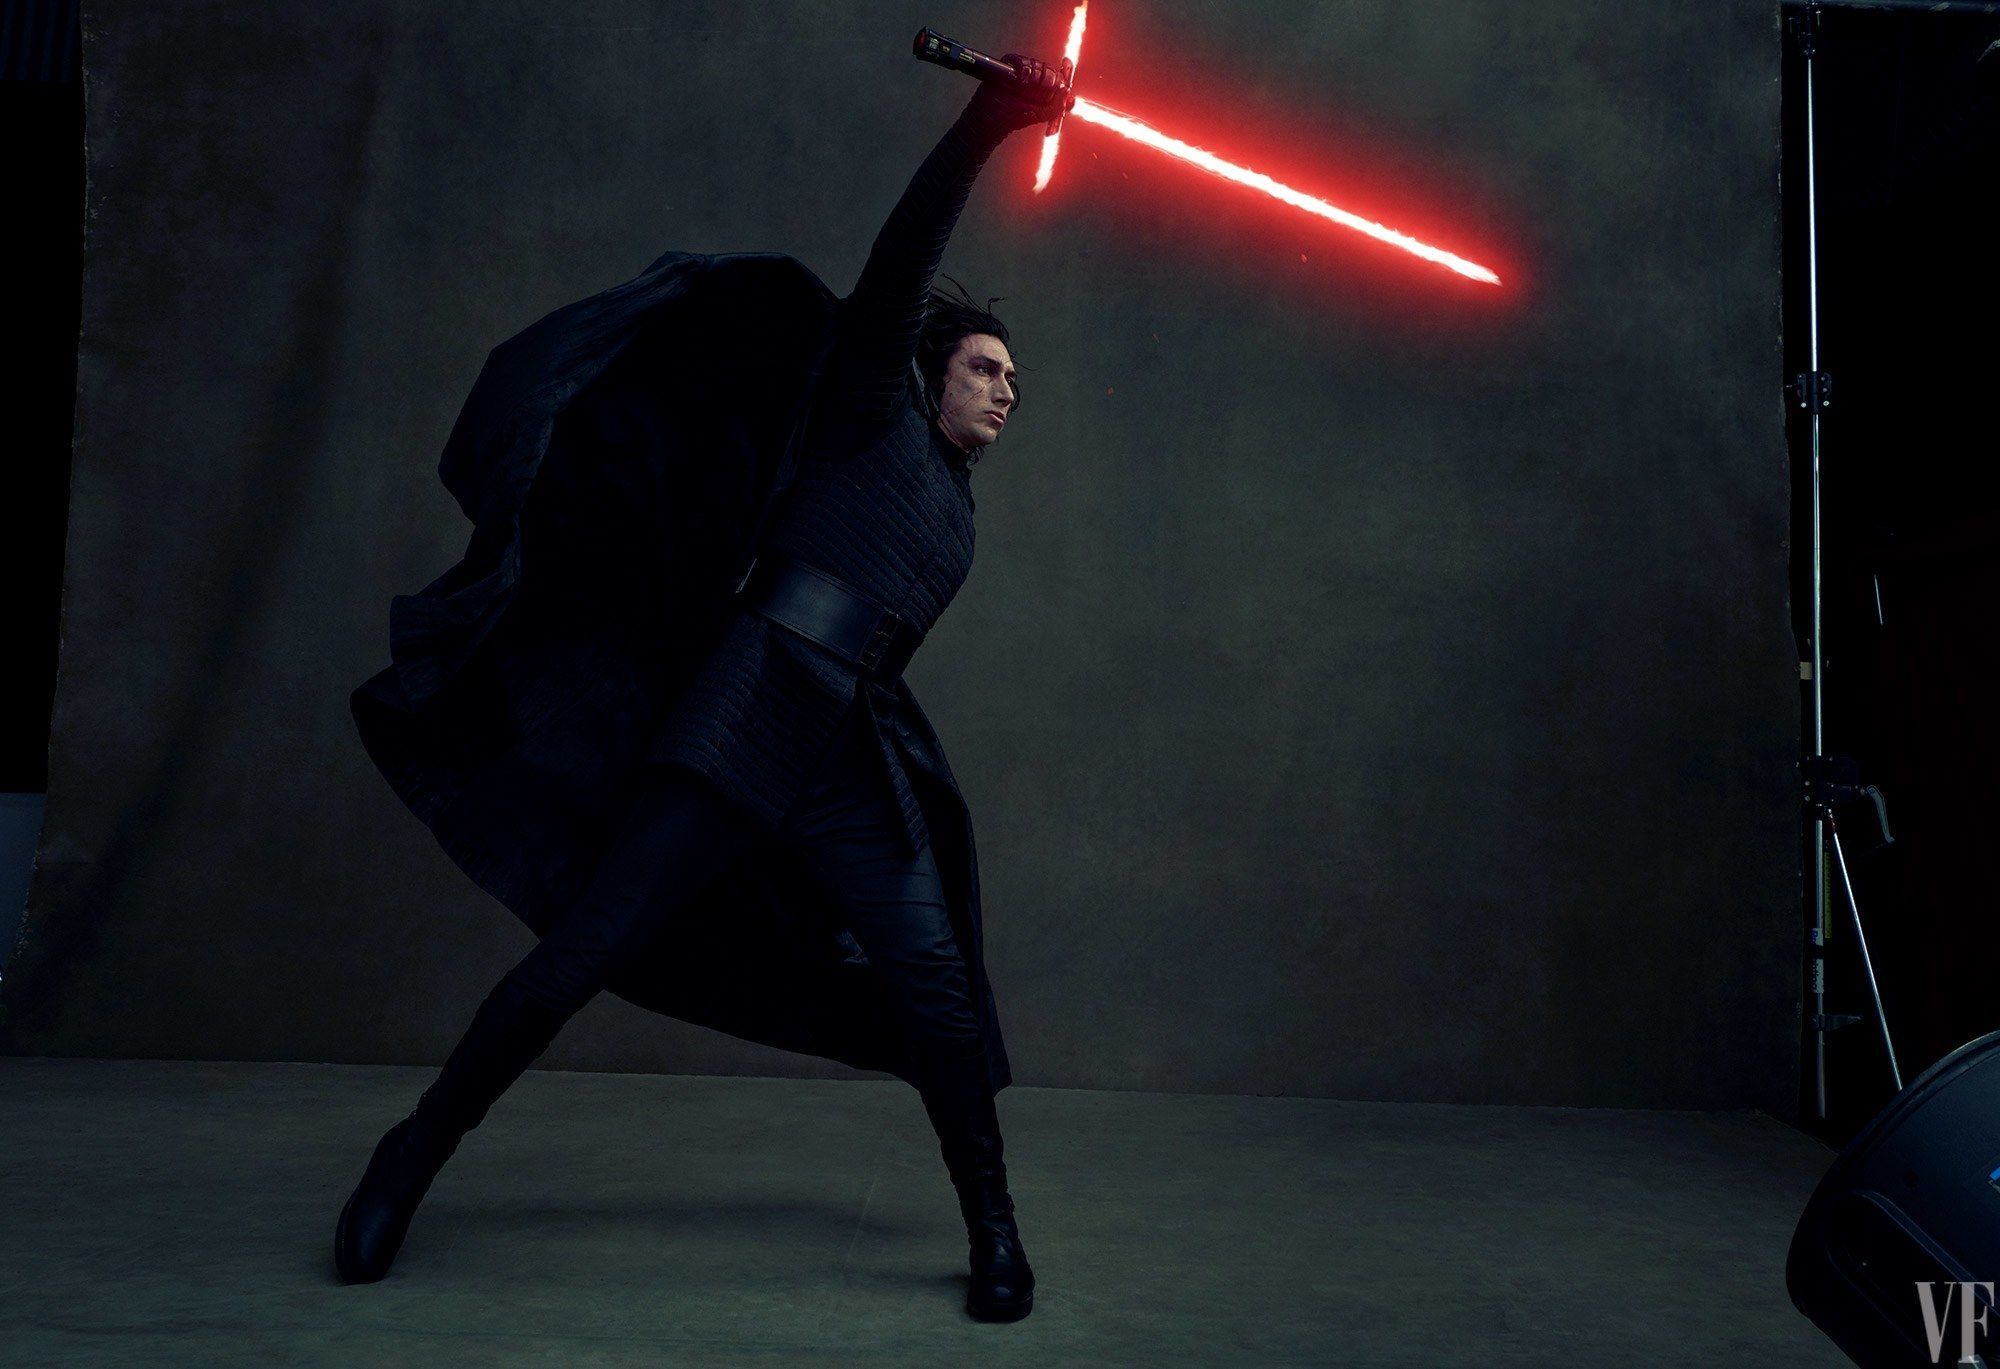 See Annie Leibovitz S Exclusive Cast Portraits Of Star Wars The Last Jedi For Vanity Fair New Star Wars Star Wars Episodes Last Jedi